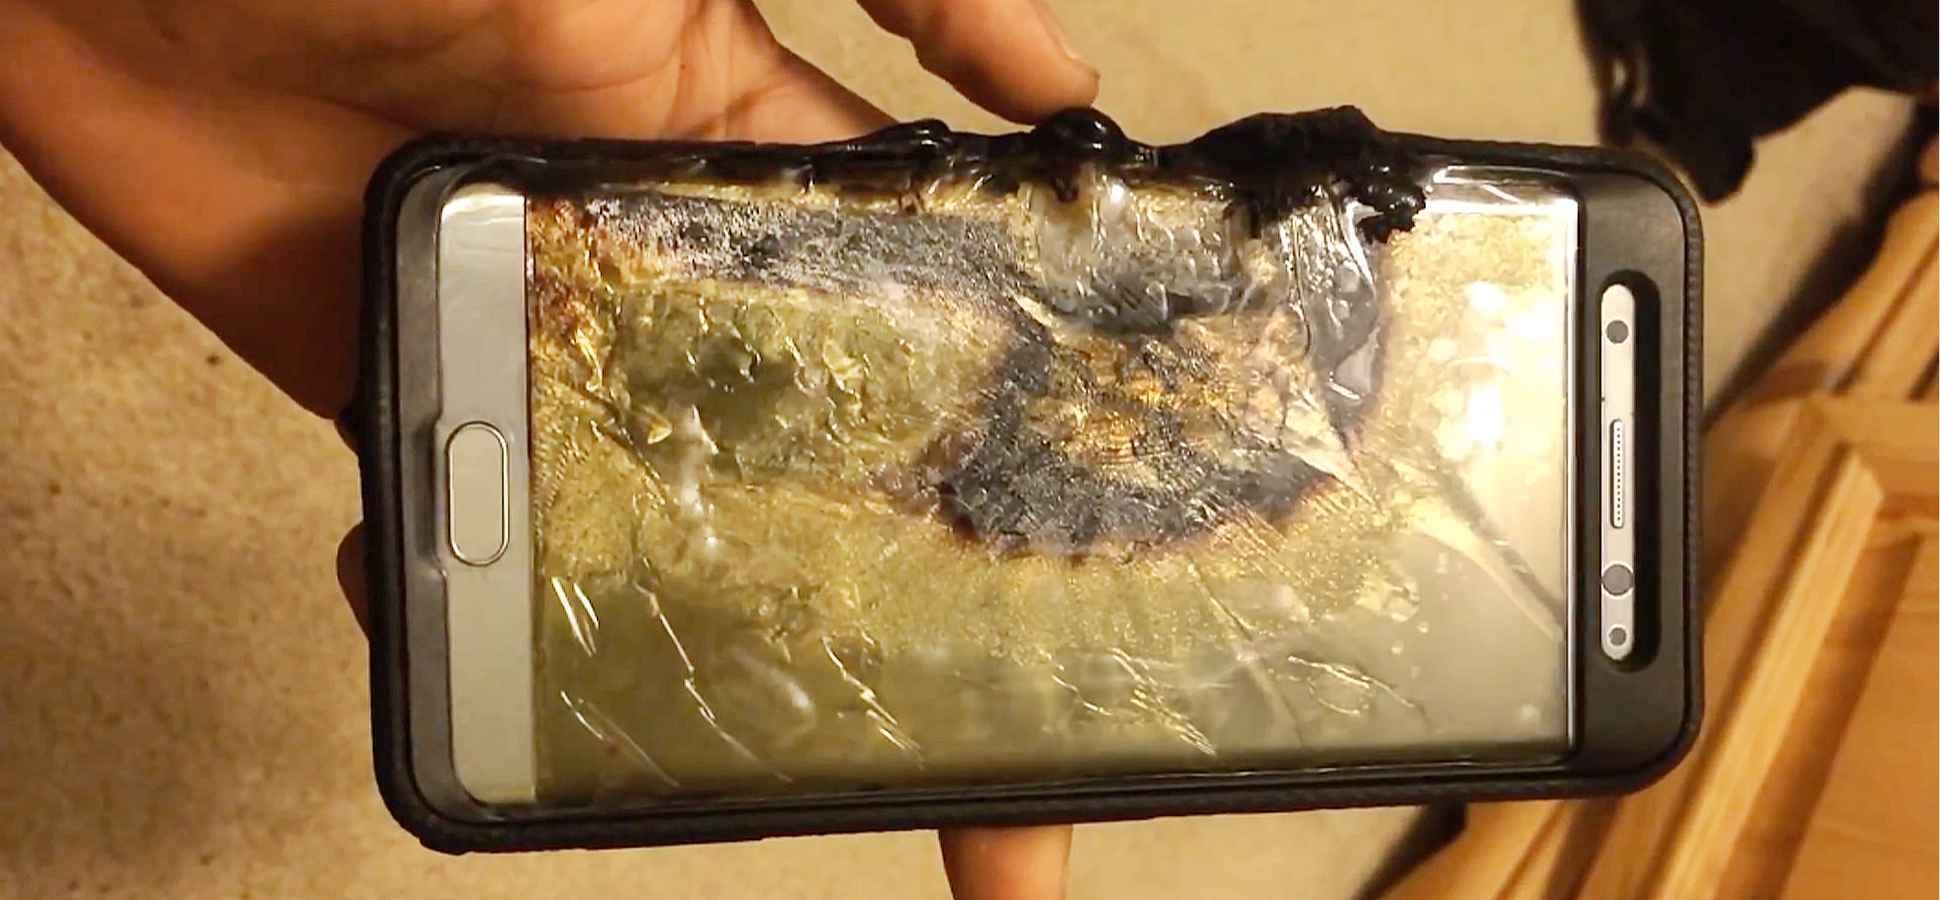 Why Samsung's Galaxy Note 7 Battery Problem Is Deeply Troubling